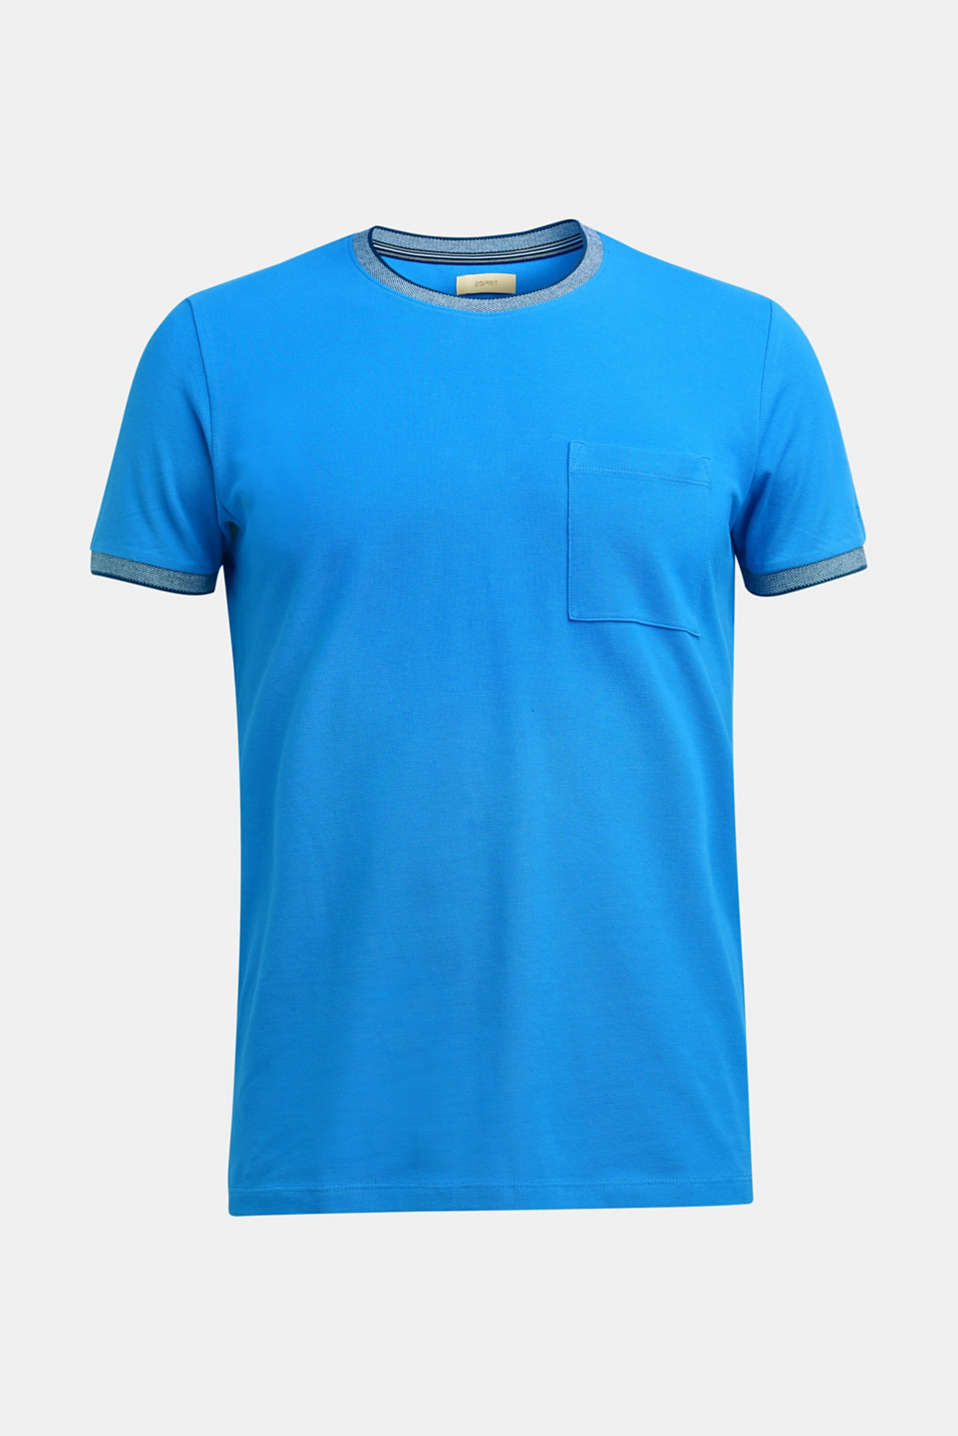 T-Shirts, BRIGHT BLUE, detail image number 5